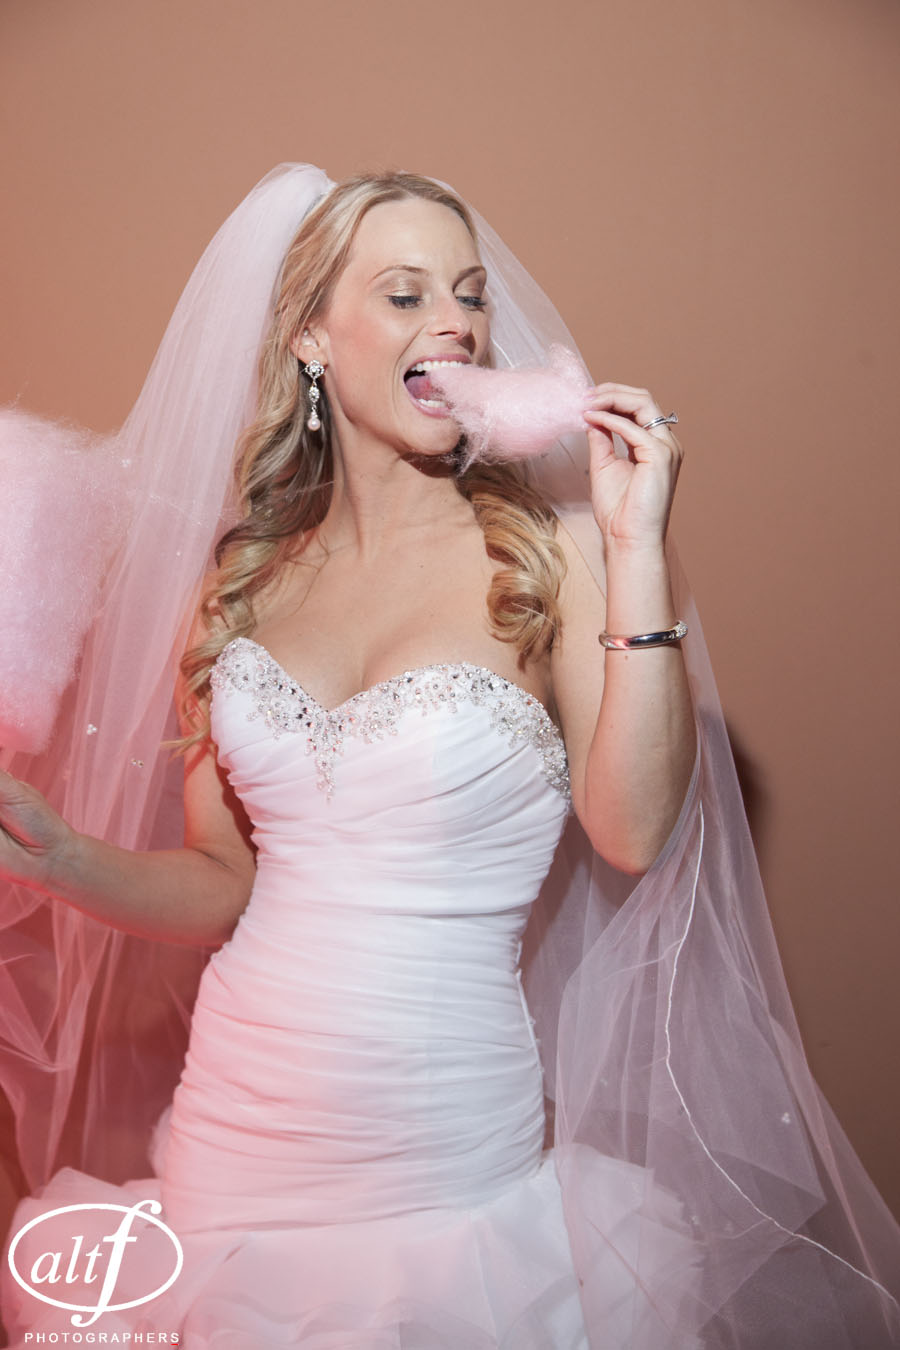 The Bride is So Sweet - Cotton Candy